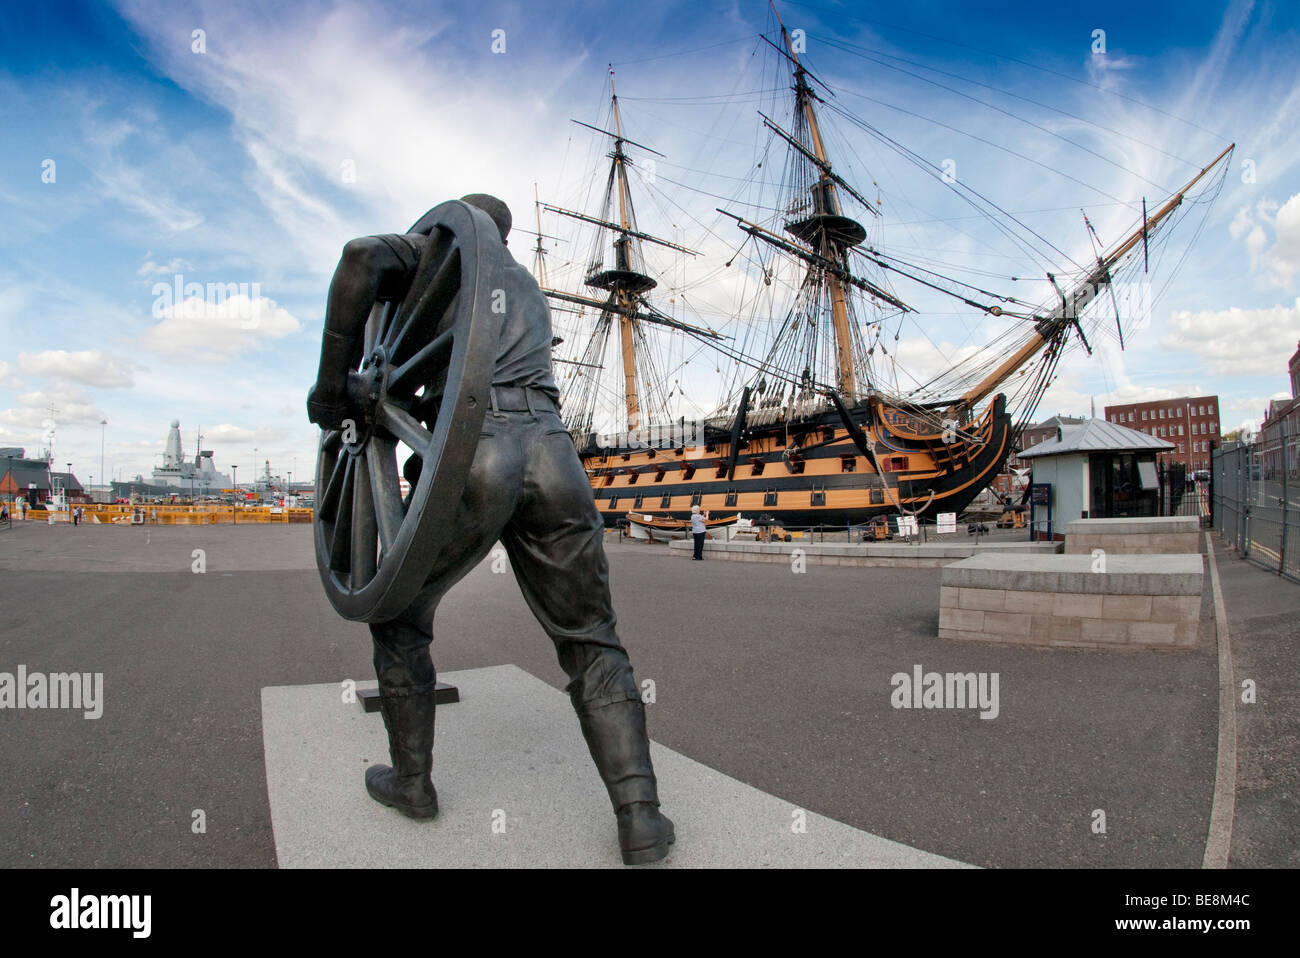 Royal tournament statue Portsmouth - Stock Image